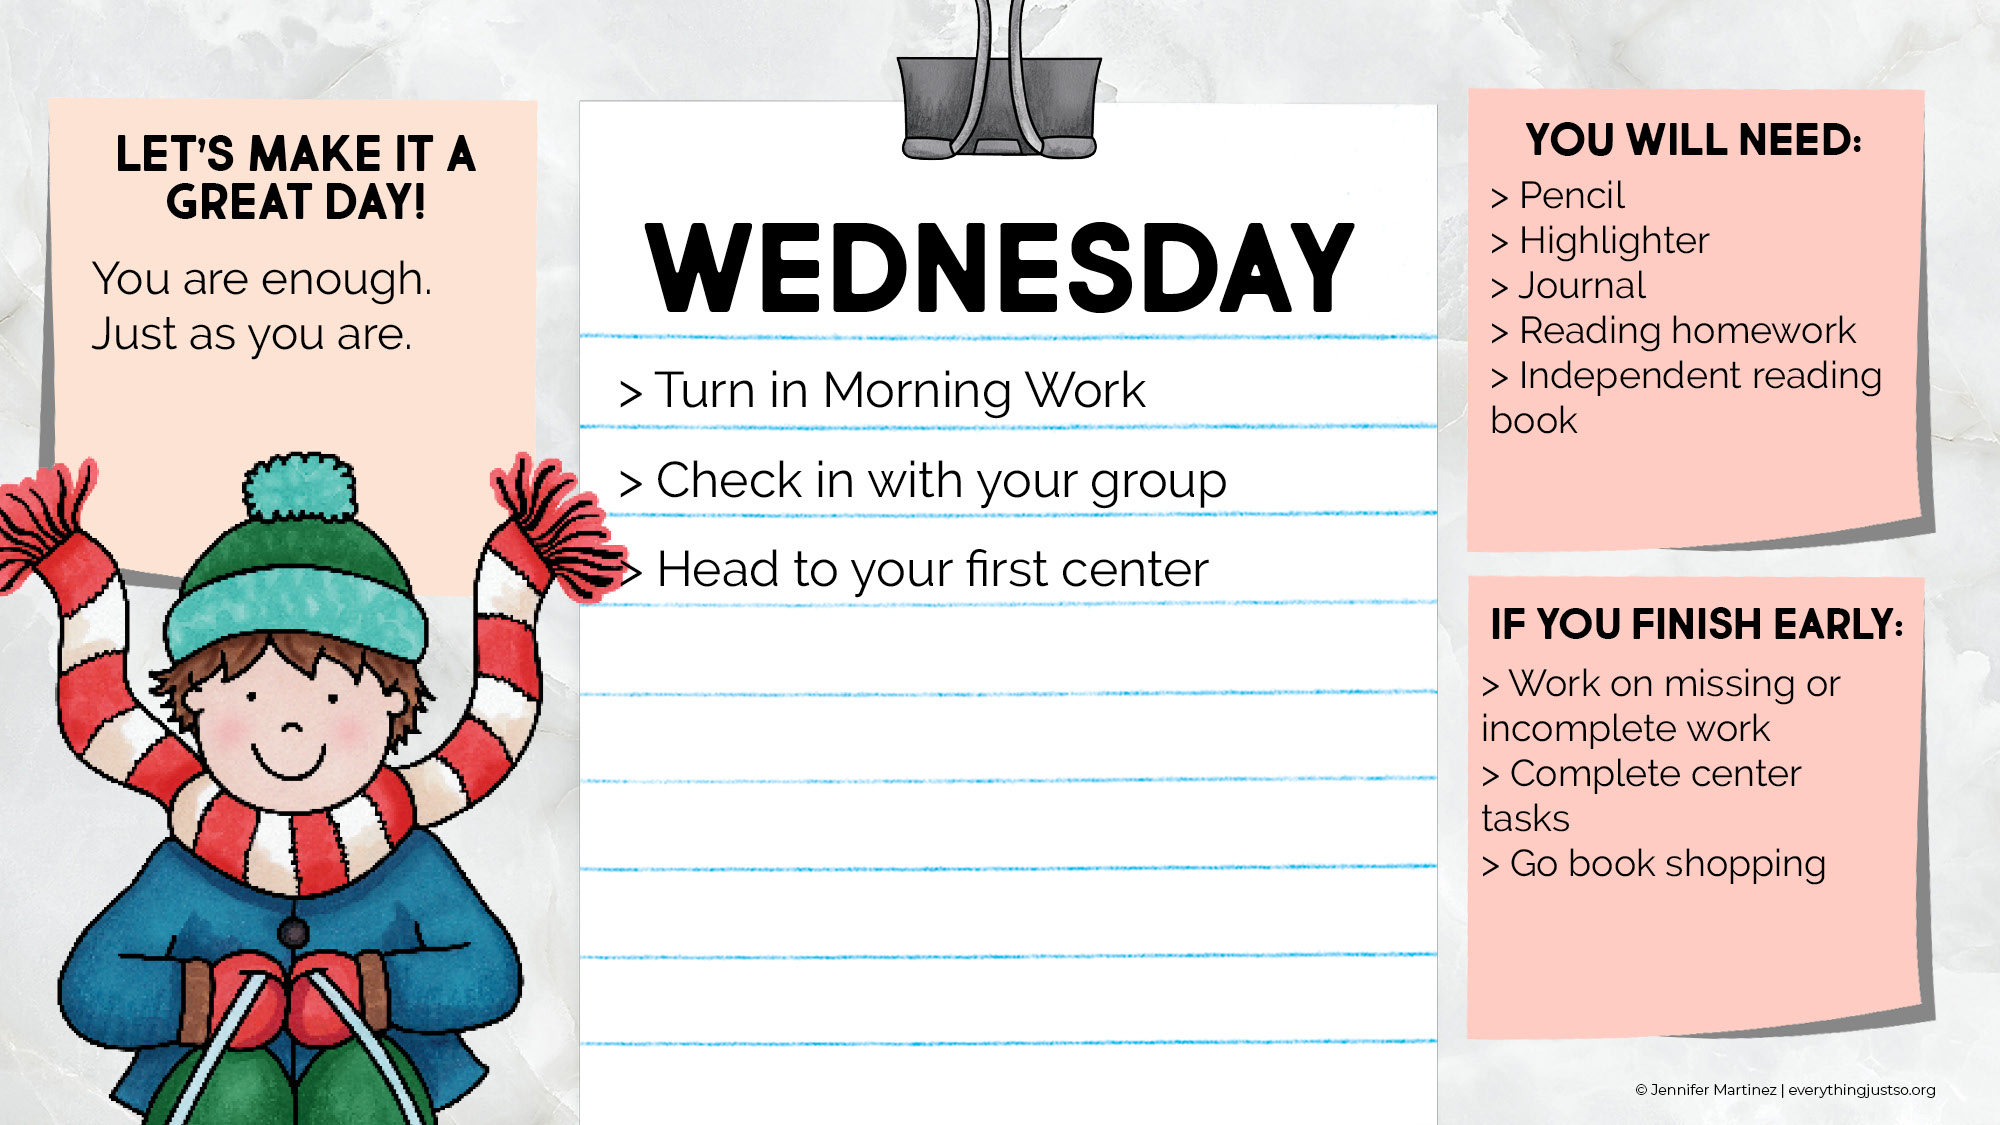 Designed for teachers - use to keep your students and yourself organized during the busyness of morning.